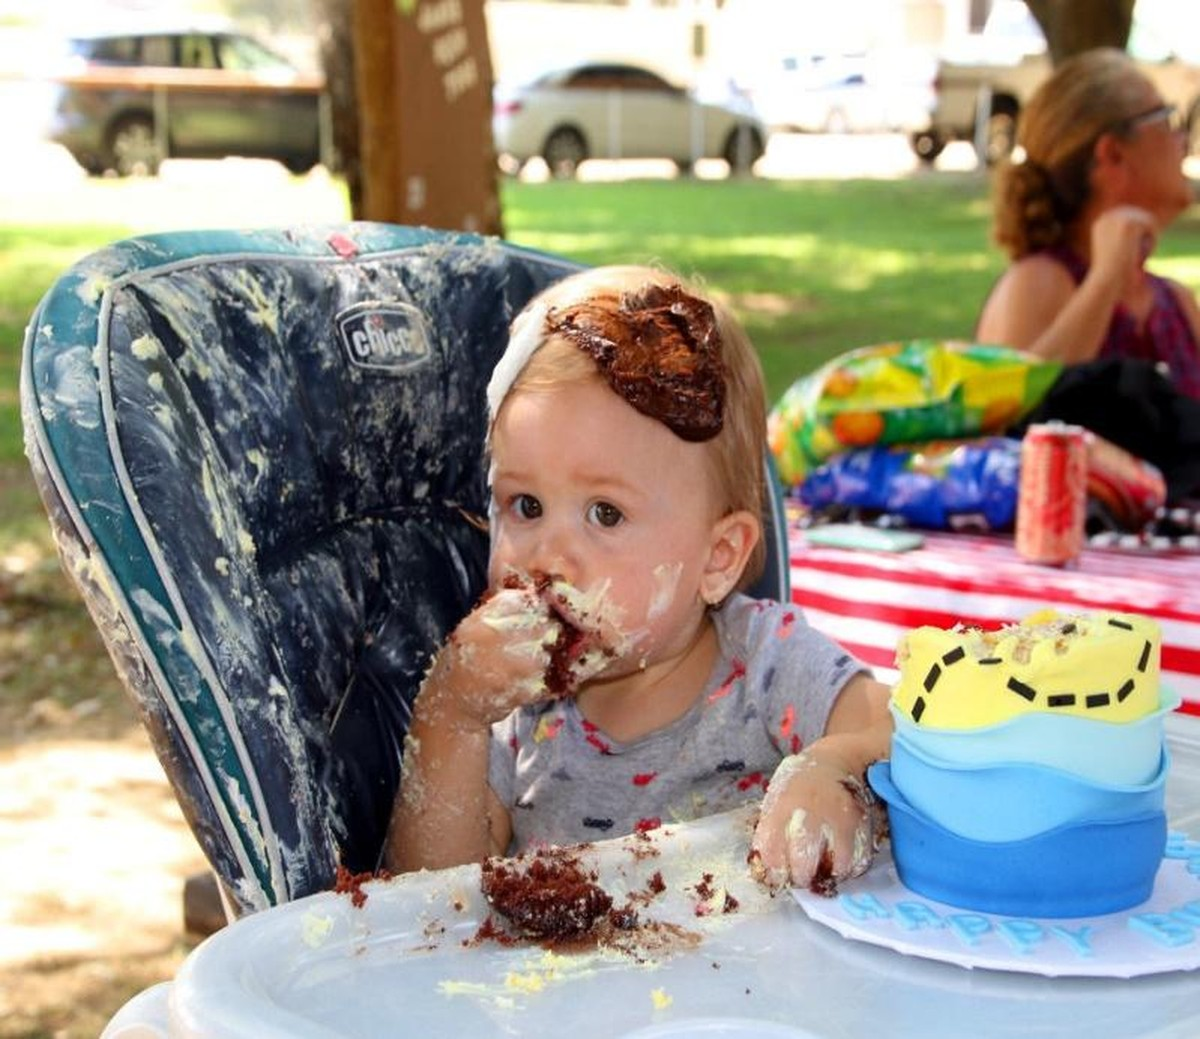 baby with cake on its face